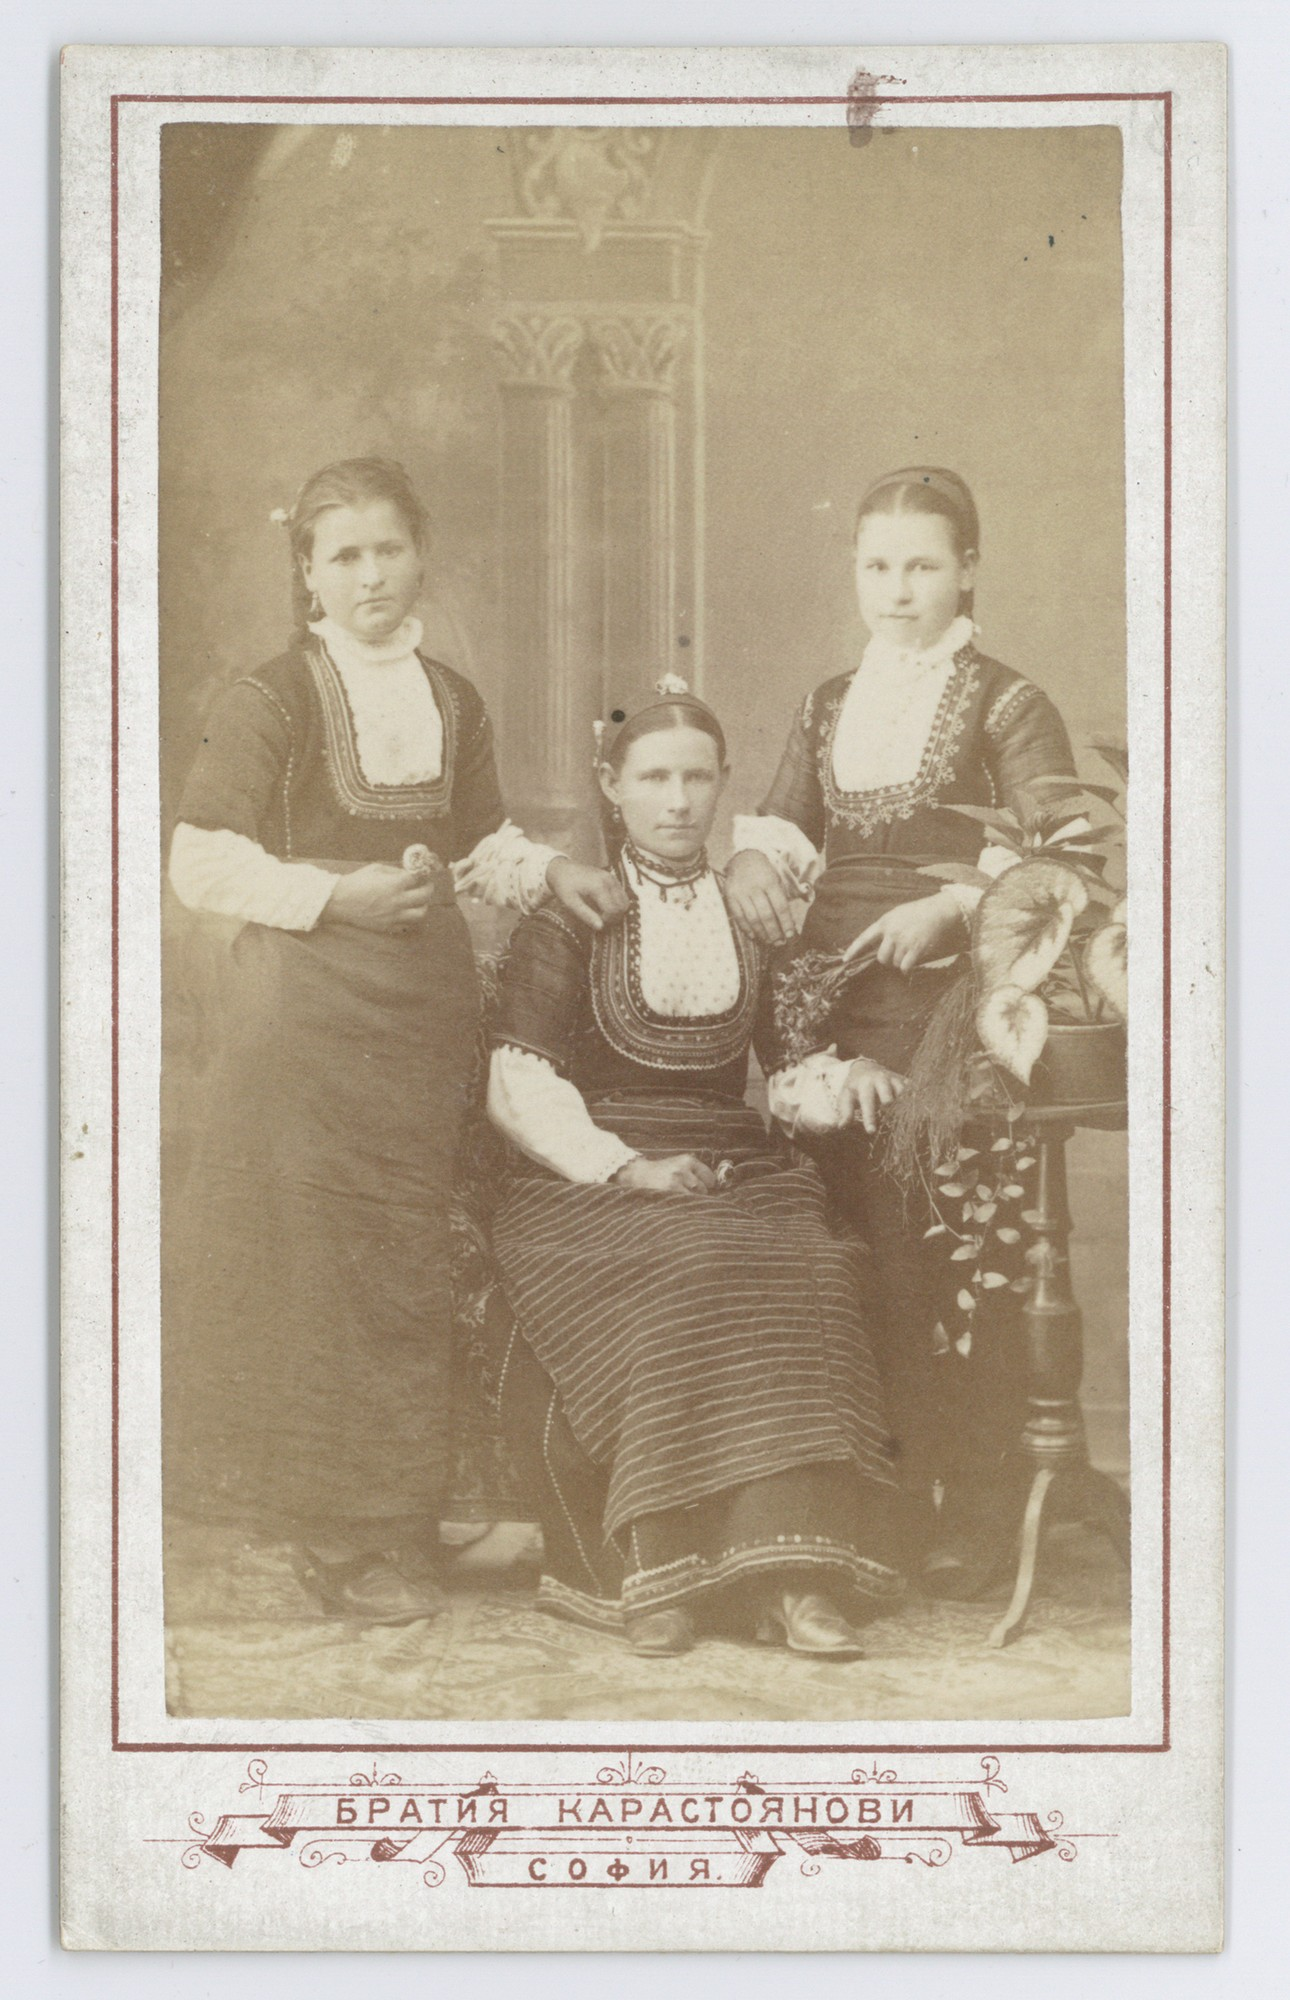 Studio portrait of three women in folk attire, © Scientific Archive of the Bulgarian Academy of Sciences